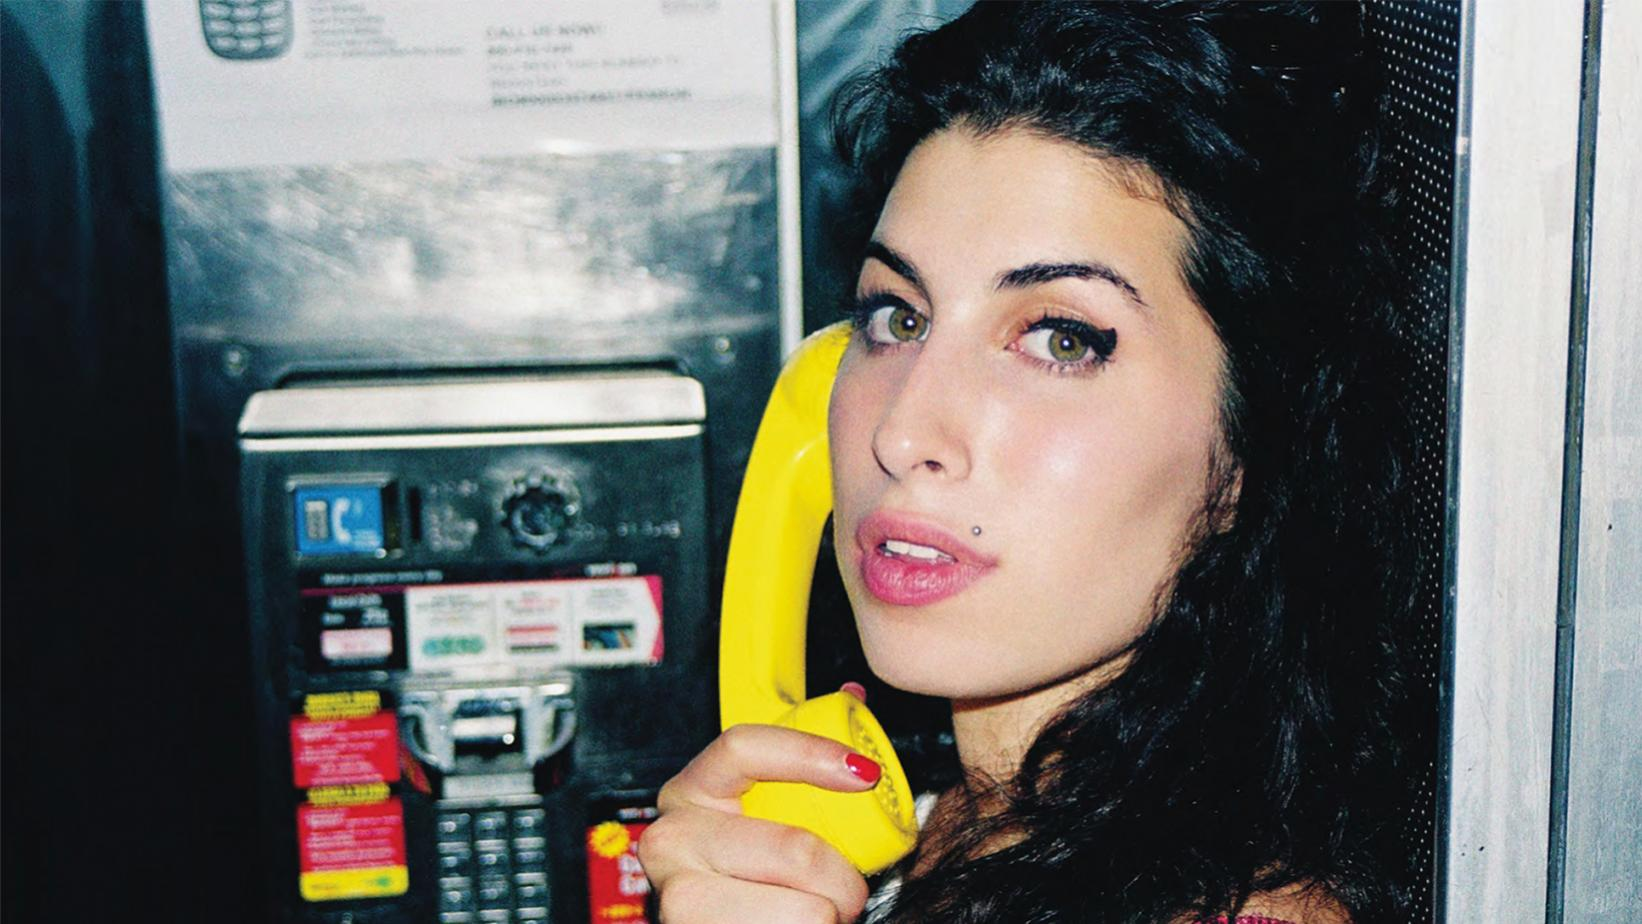 Photo of Amy Winehouse from photographer Charles Moriarty